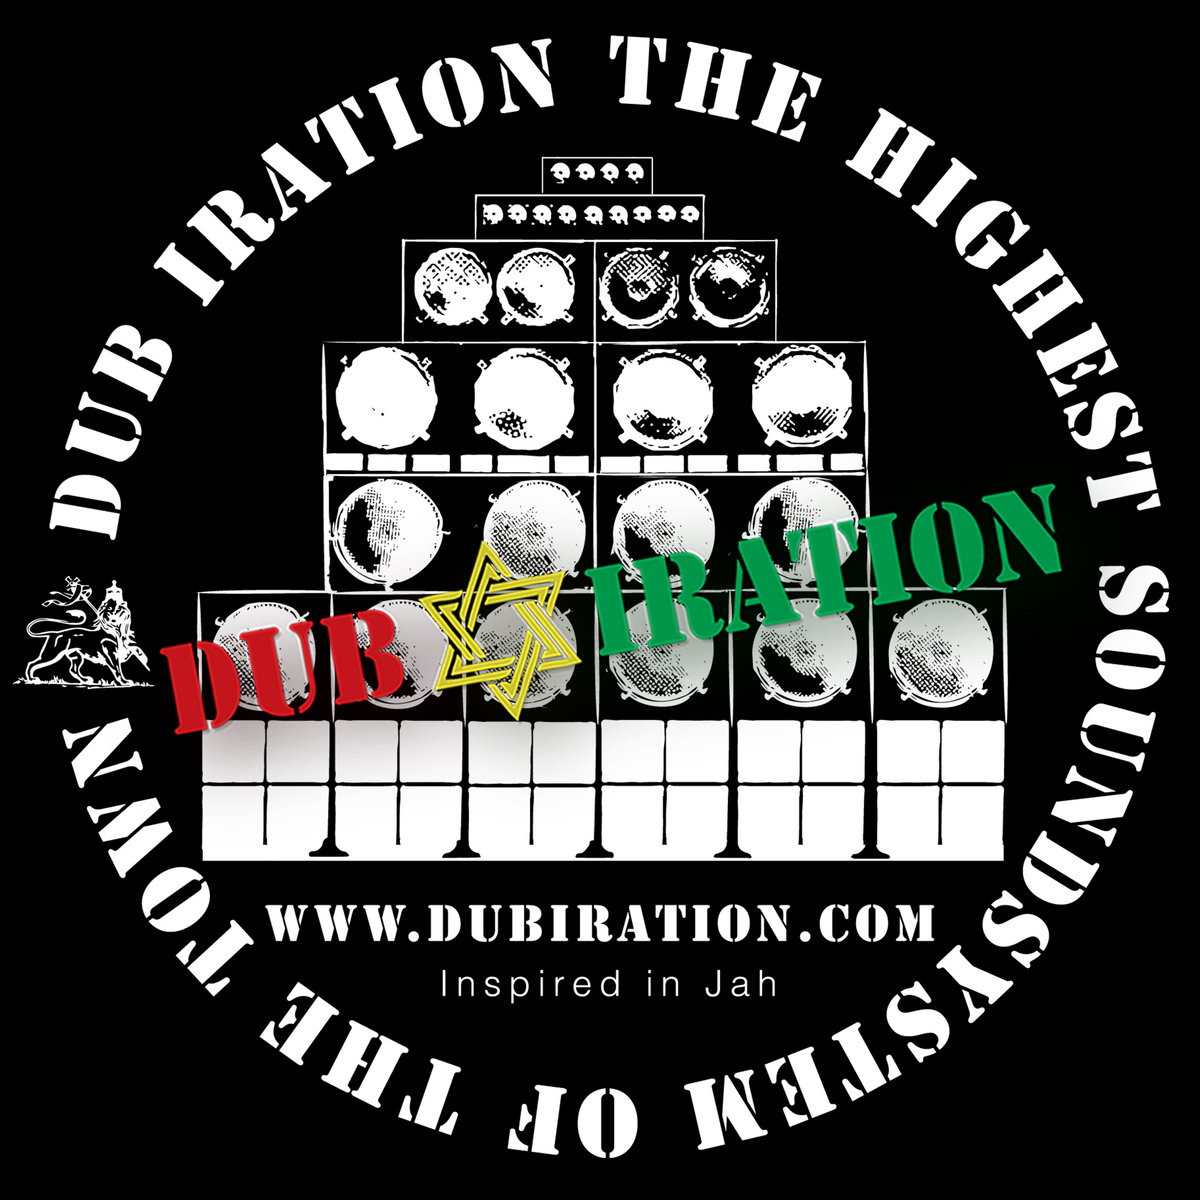 Quot The Lost Books Of Dub Quot Chapter 1 Dub Iration Sound System